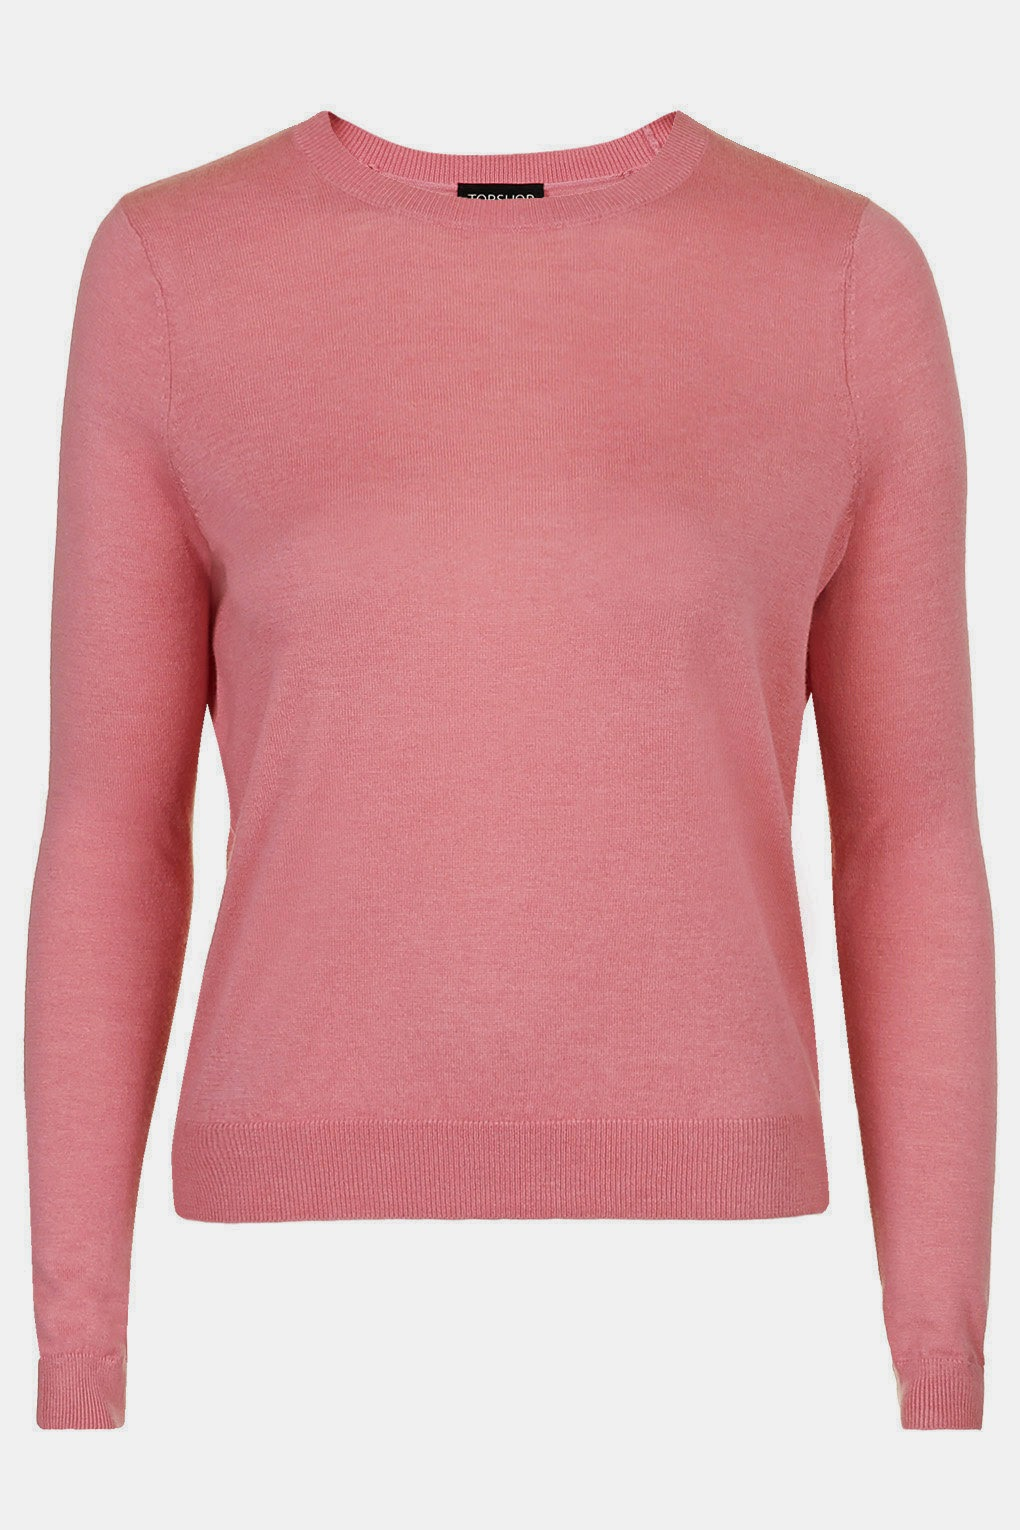 topshop pink jumper, pink long sleeve top,